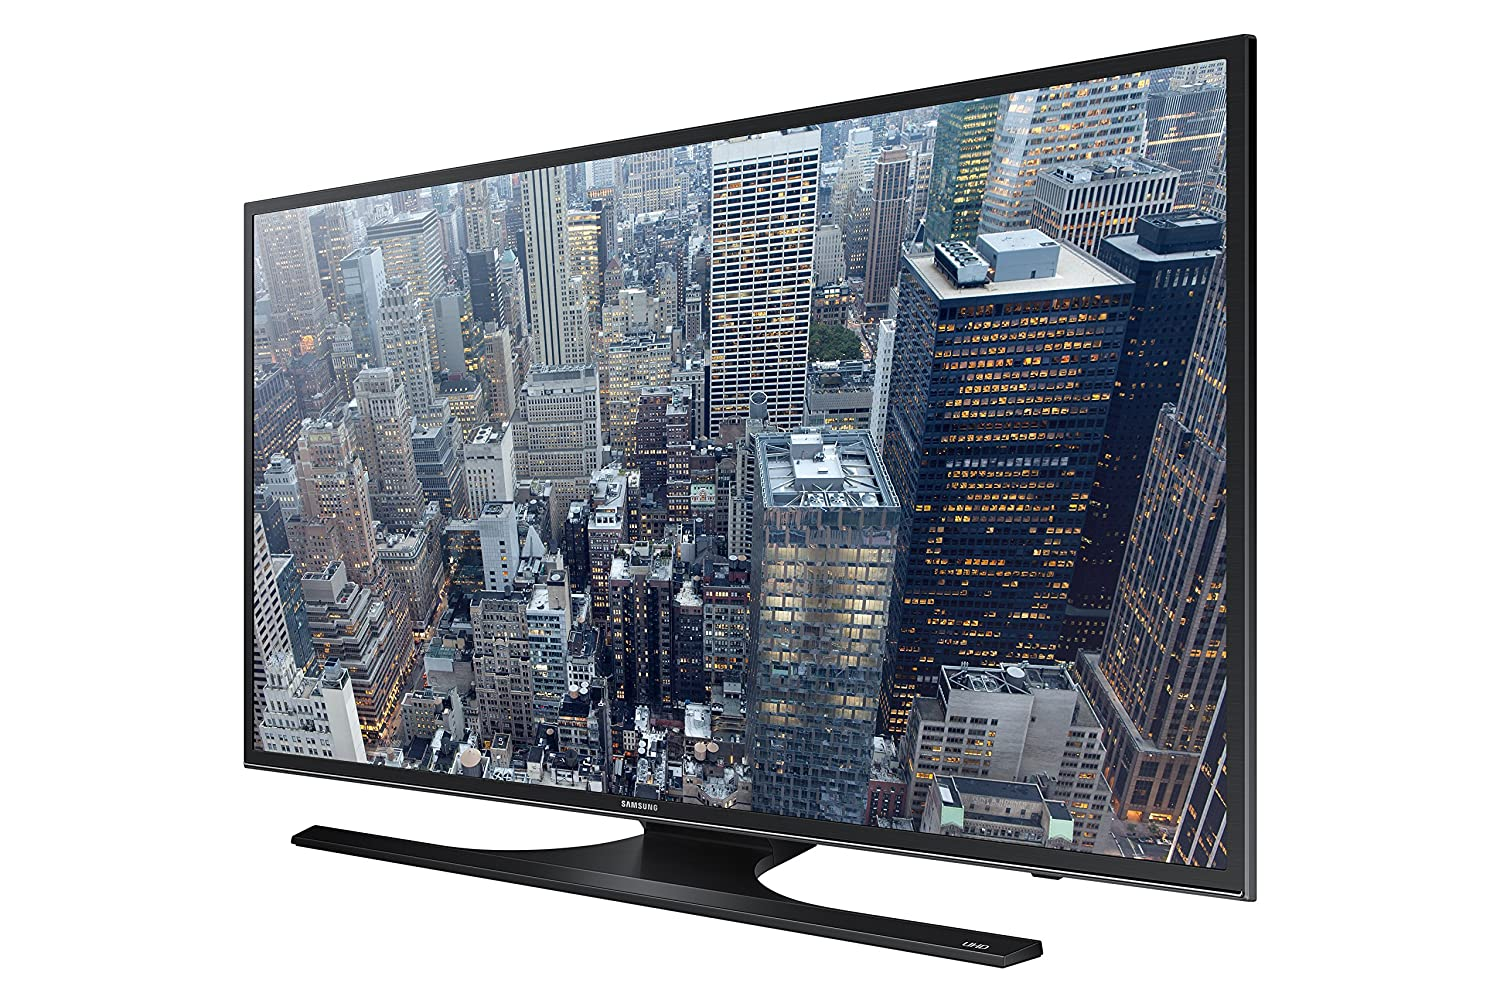 Samsung UN55JU6500F LED TV Windows 8 X64